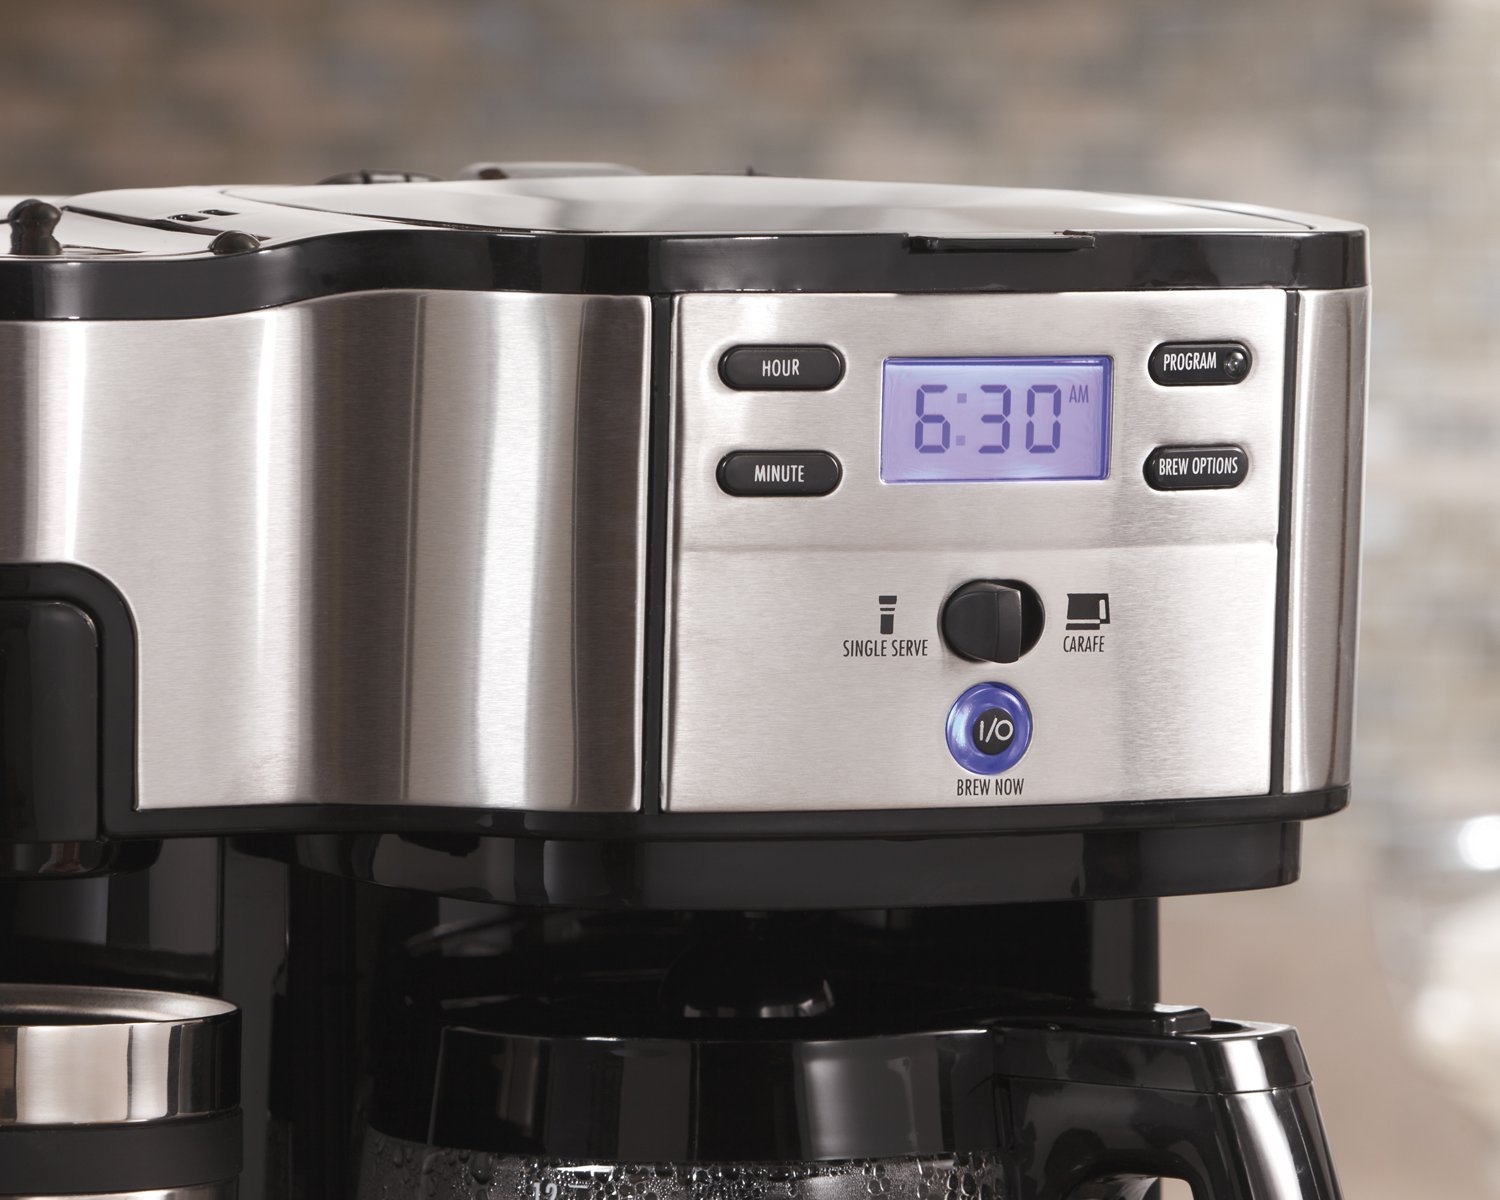 Hamilton Beach (49980A) Single Serve Coffee Maker and Coffee Pot Maker, Programmable, Black/Stainless Steel (Renewed) by Hamilton Beach (Image #5)